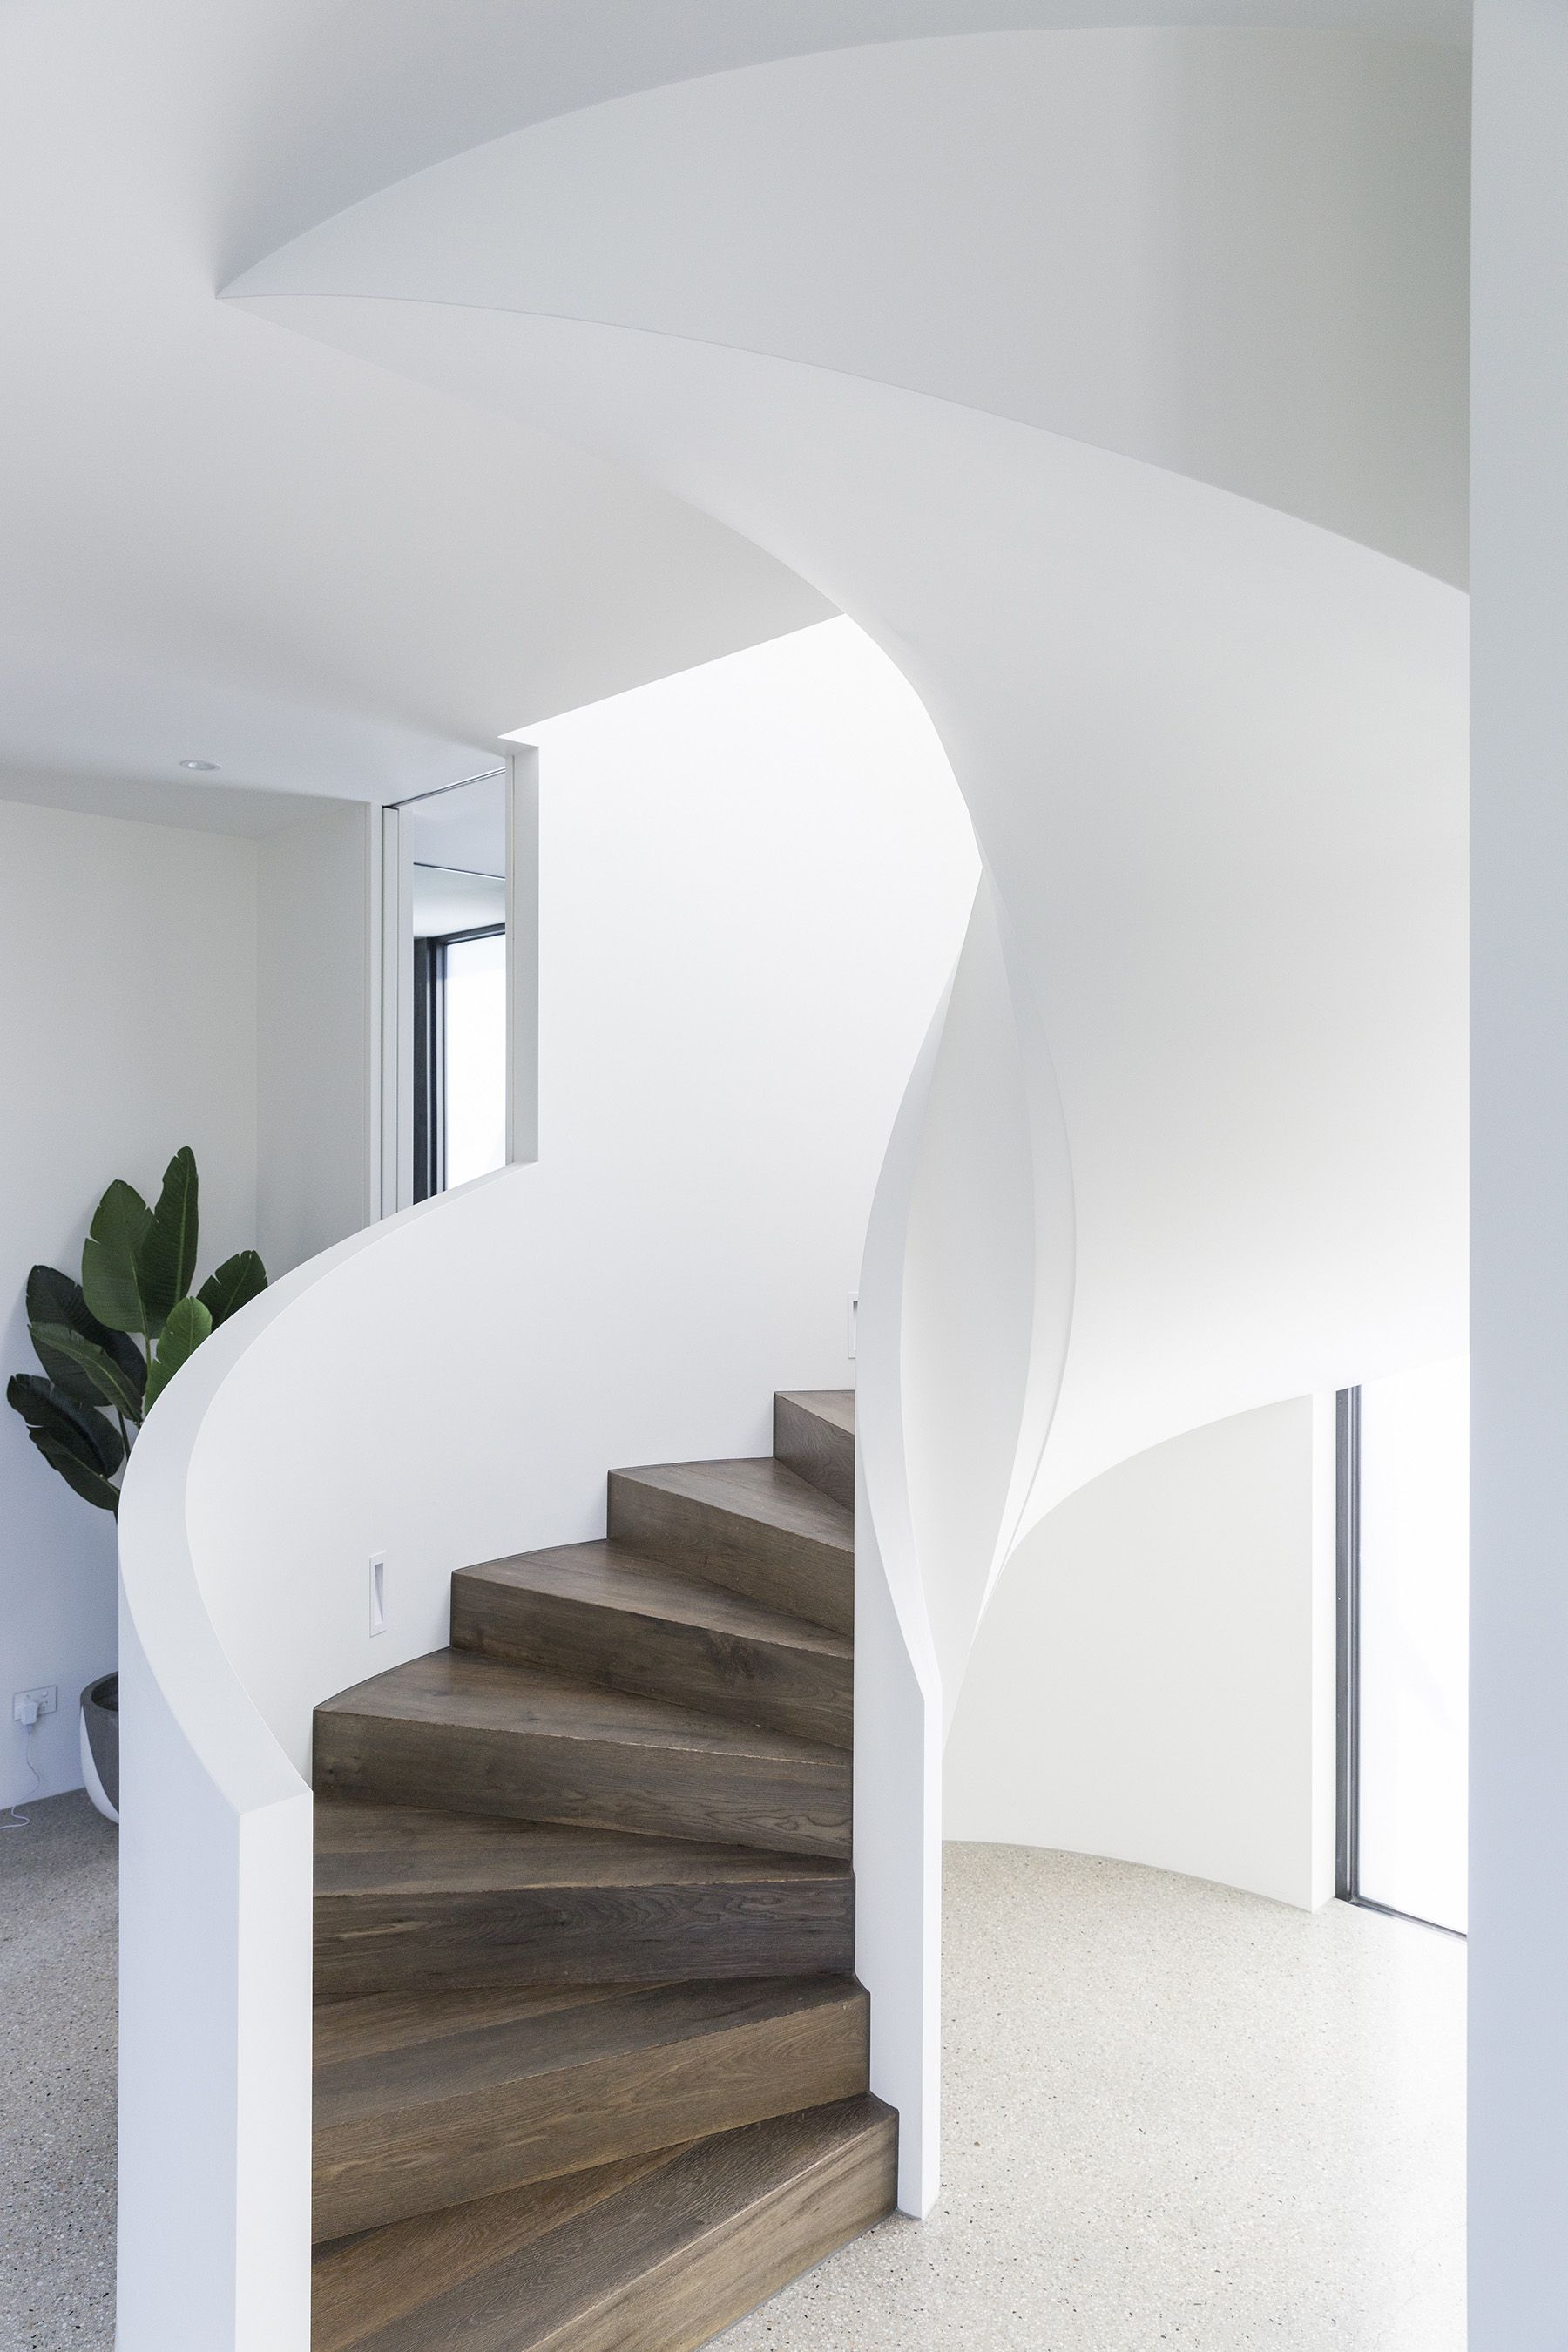 Curved Architecture Stairs Curved Stair Architectural Plaster Walls Staircase